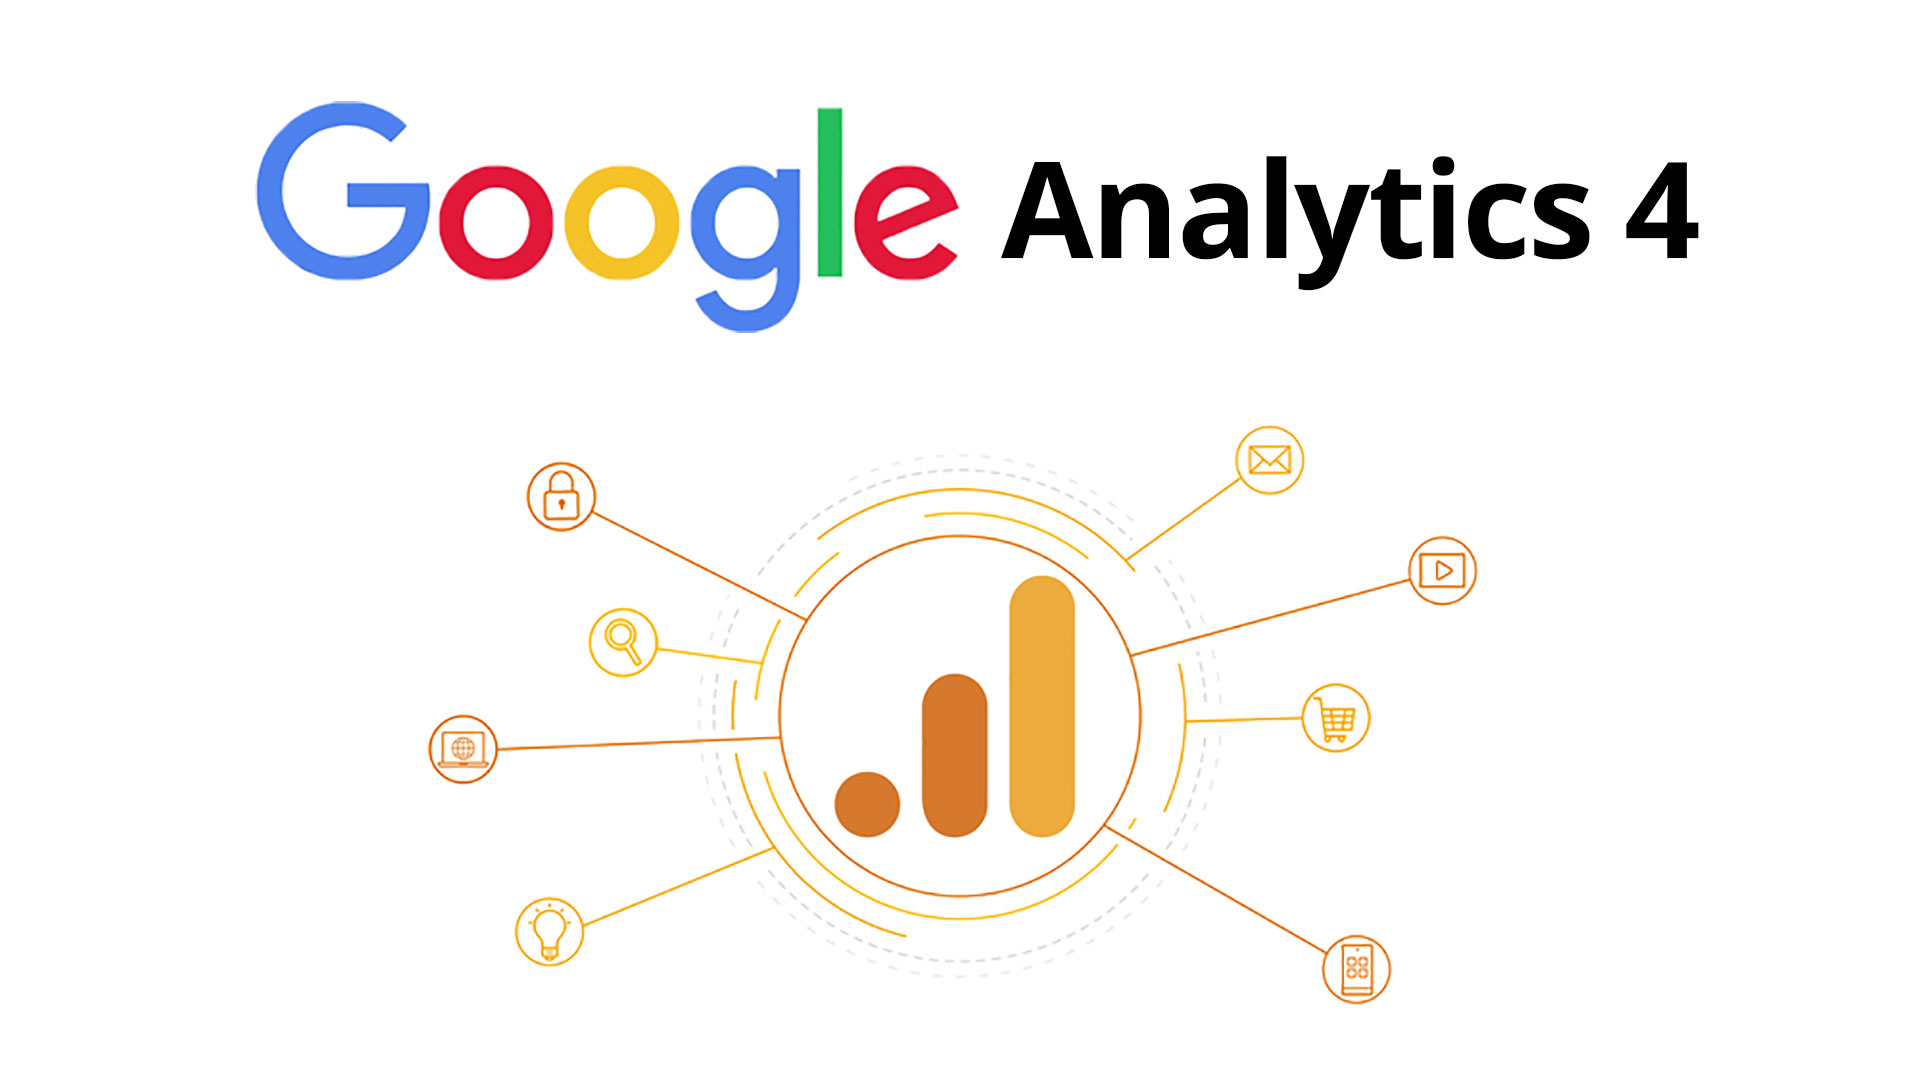 Google Analytics 4: Essential Features and What's Changed